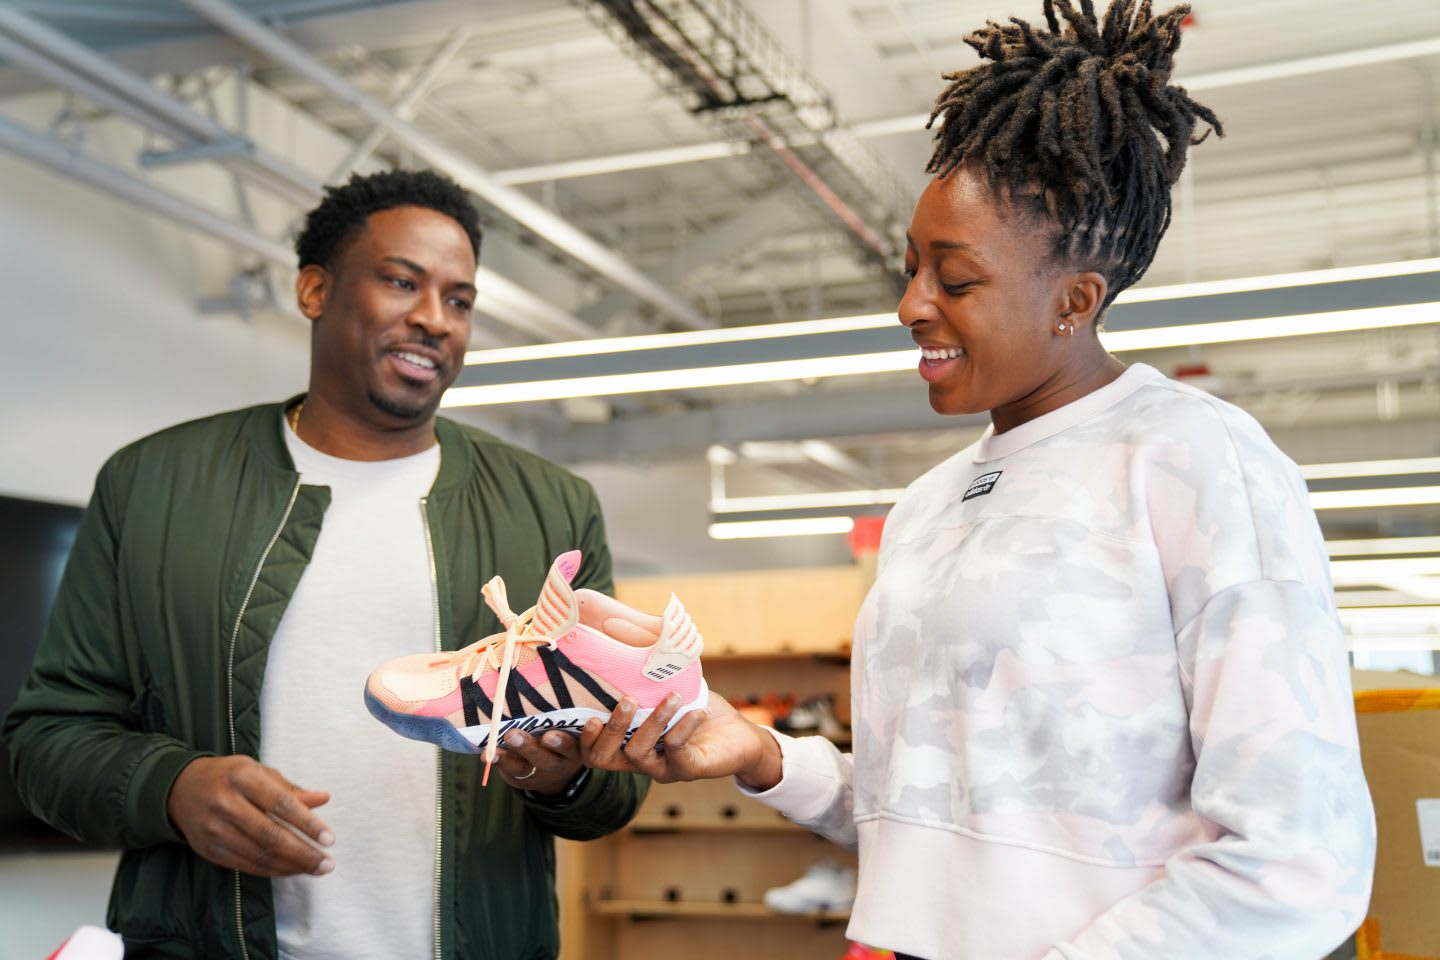 WNBA player Nneka Ogwumike holding sneaker and talking to colleague in the office, creativity, sports, work, collaboration, teamwork, teammates, GamePlan A